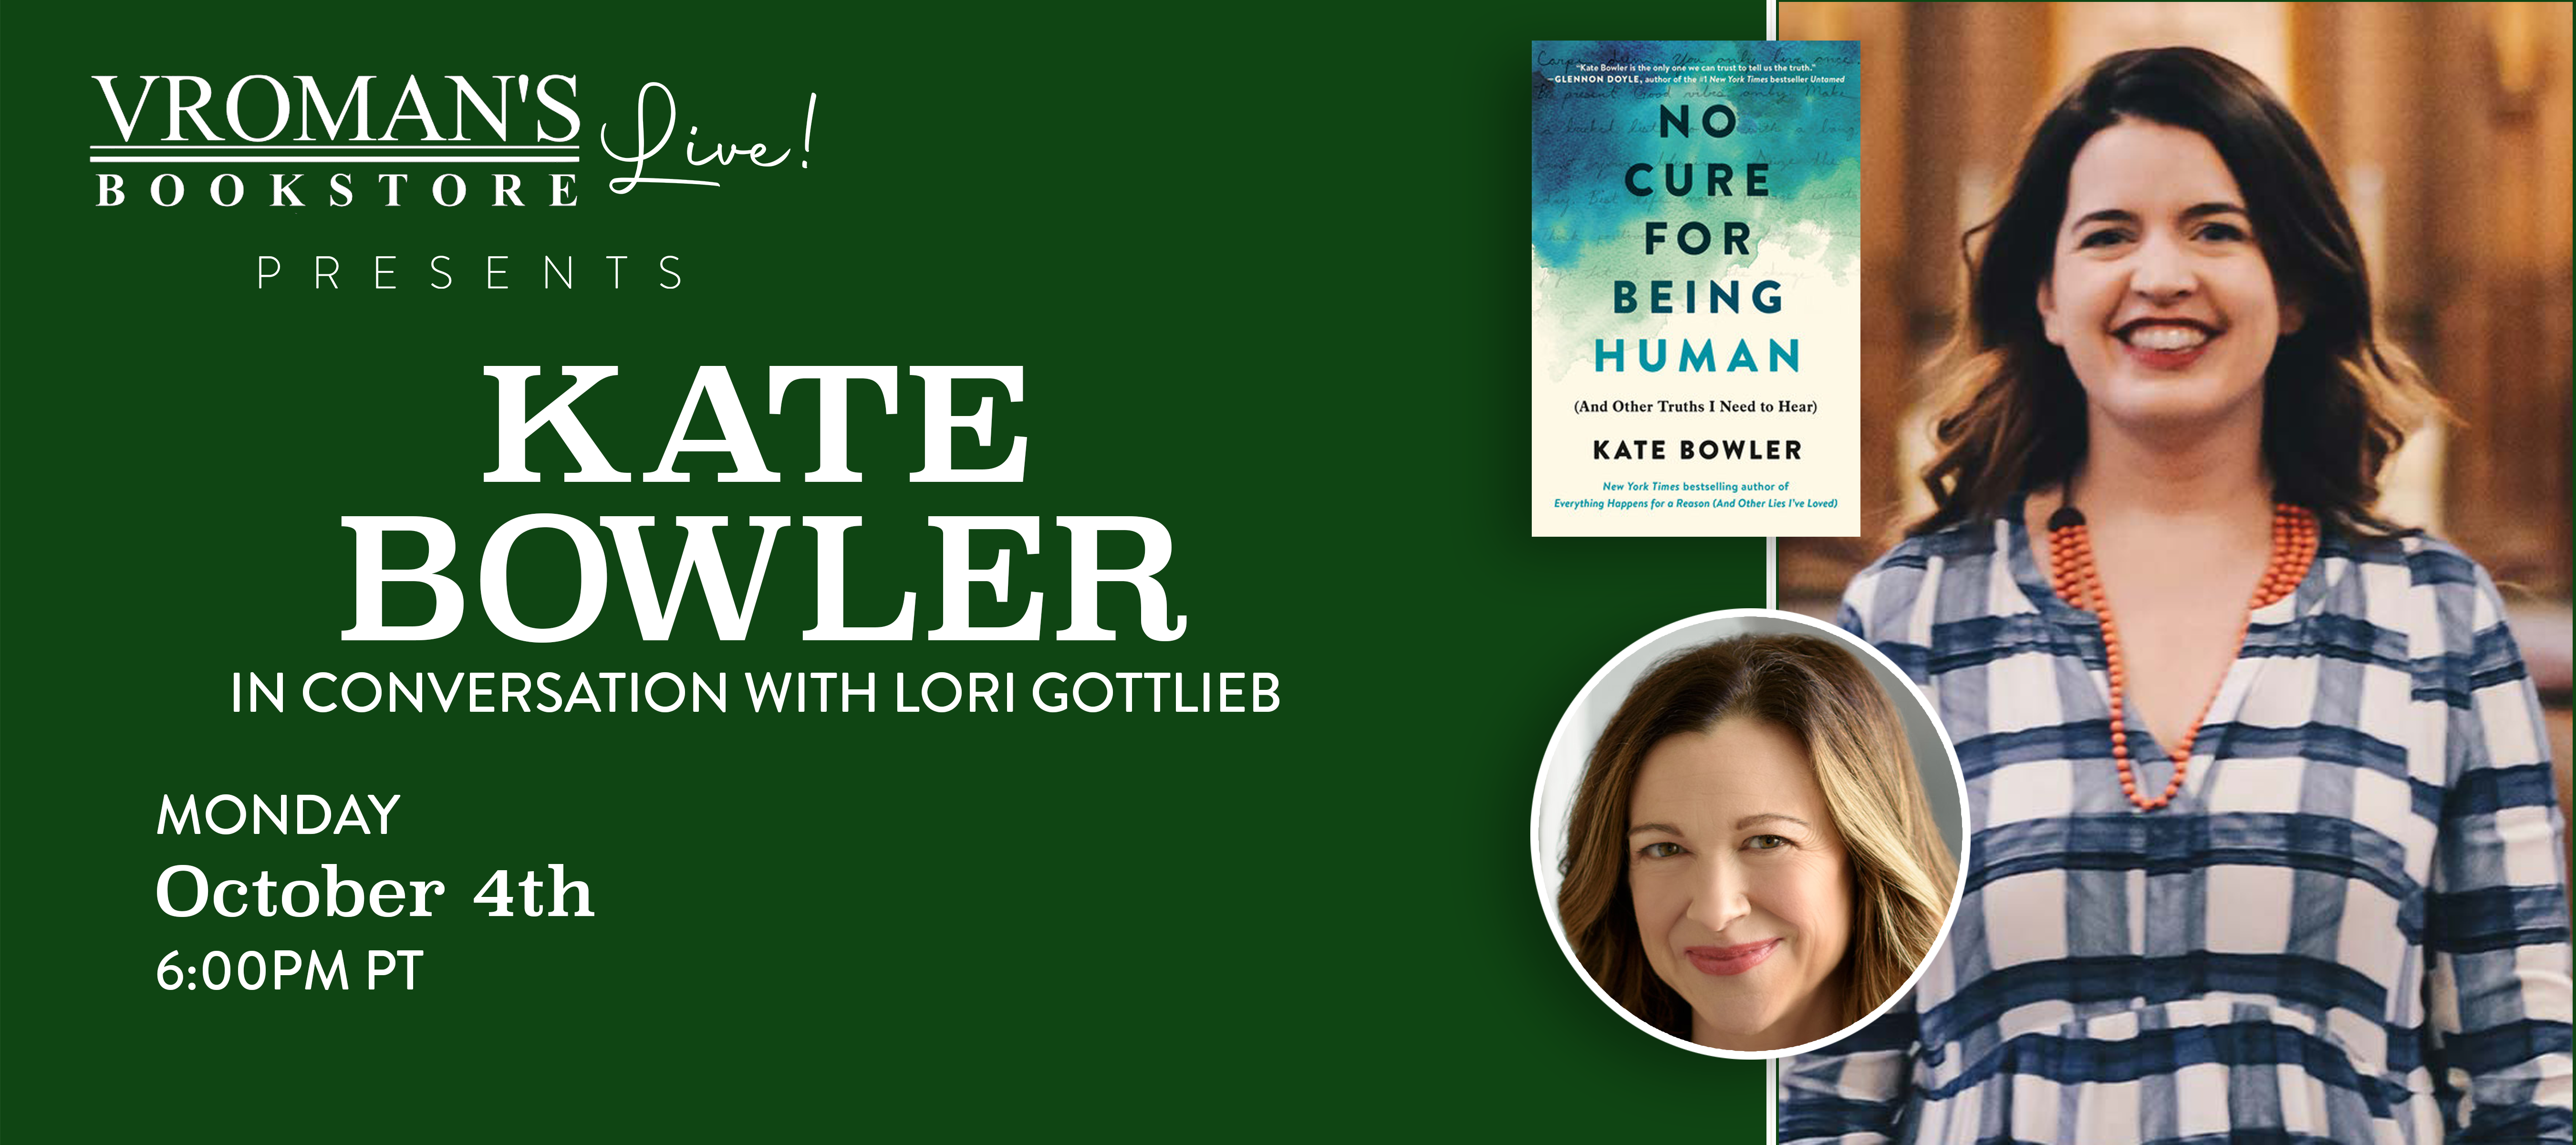 Image of green banner with details event on Monday, October 4, 6pm  Kate Bowler, in conversation with Lori Gottlieb, discusses No Cure for Being Human: (And Other Truths I Need to Hear)